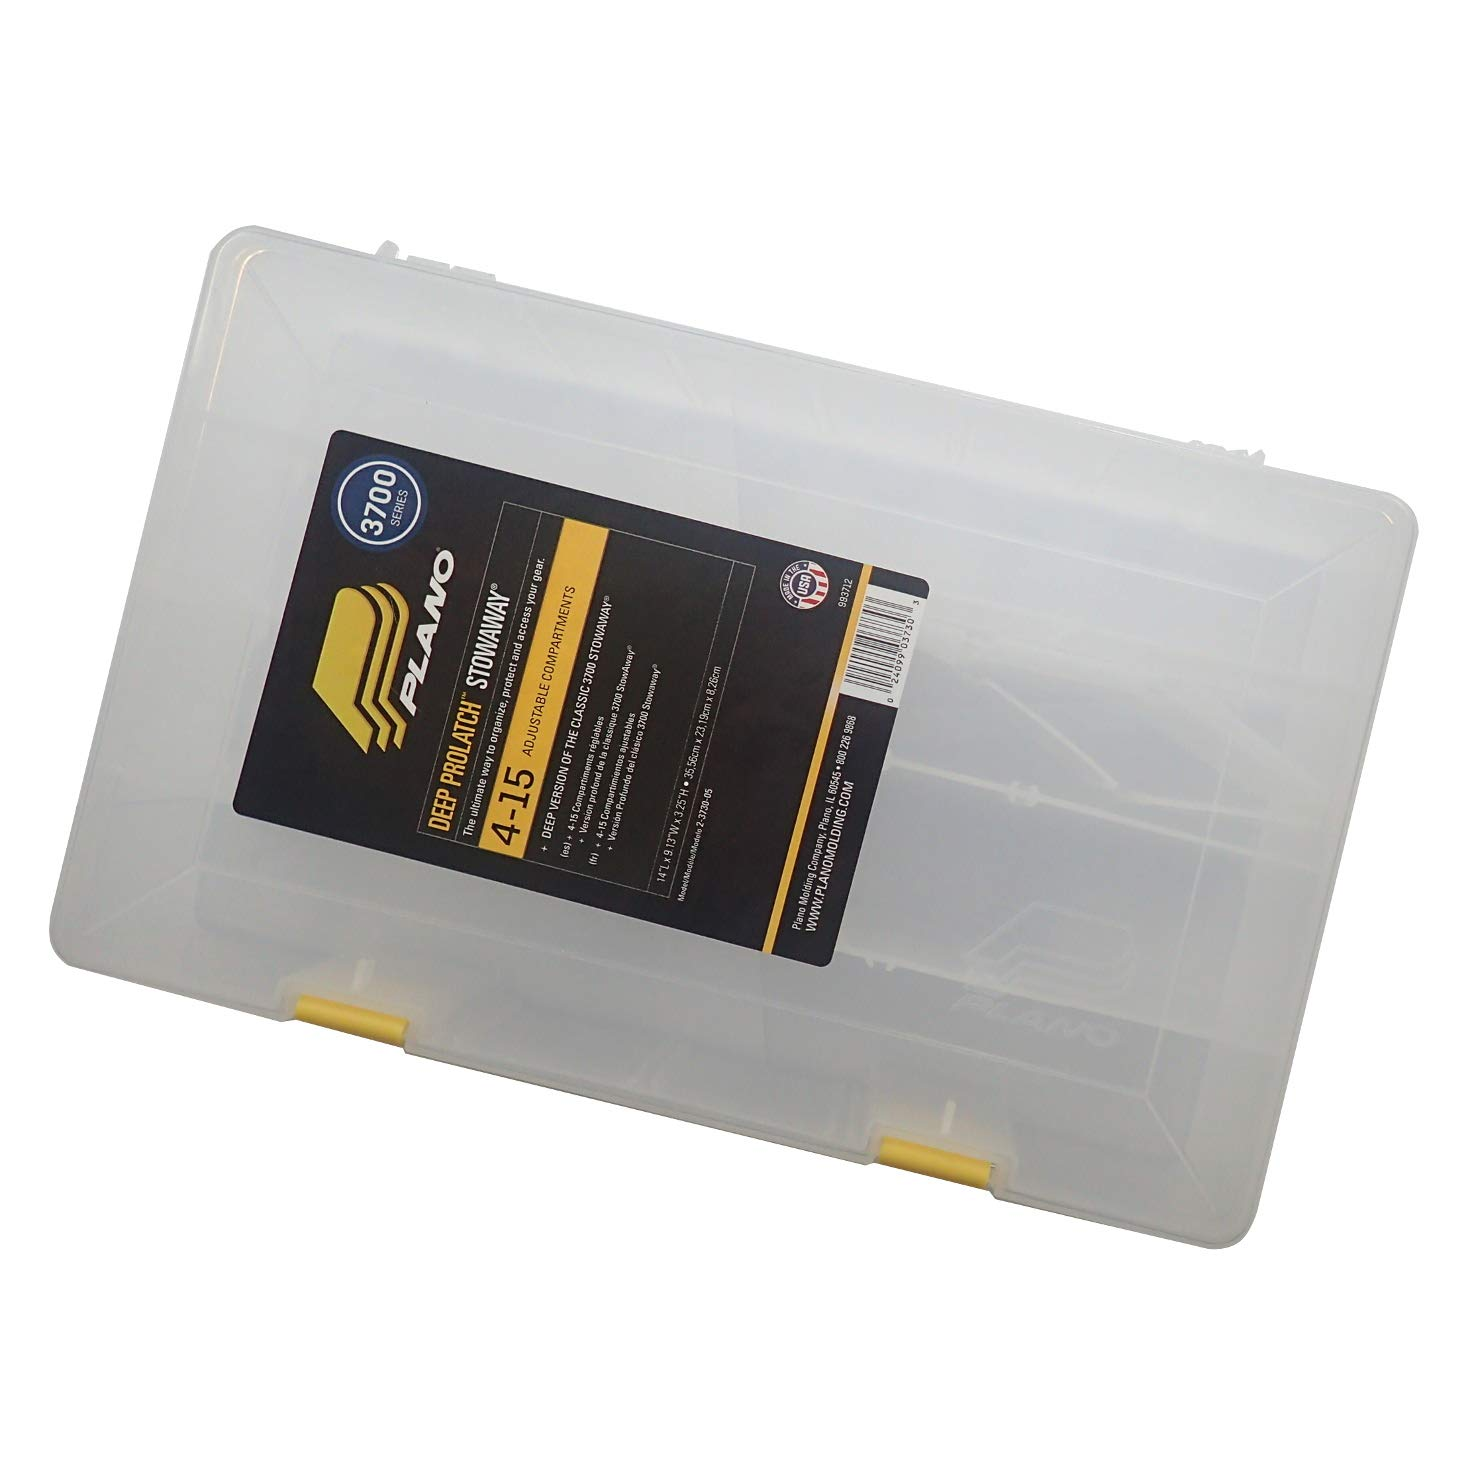 Plano 23701-00 Stowaway with Adjustable Dividers Pack of 1